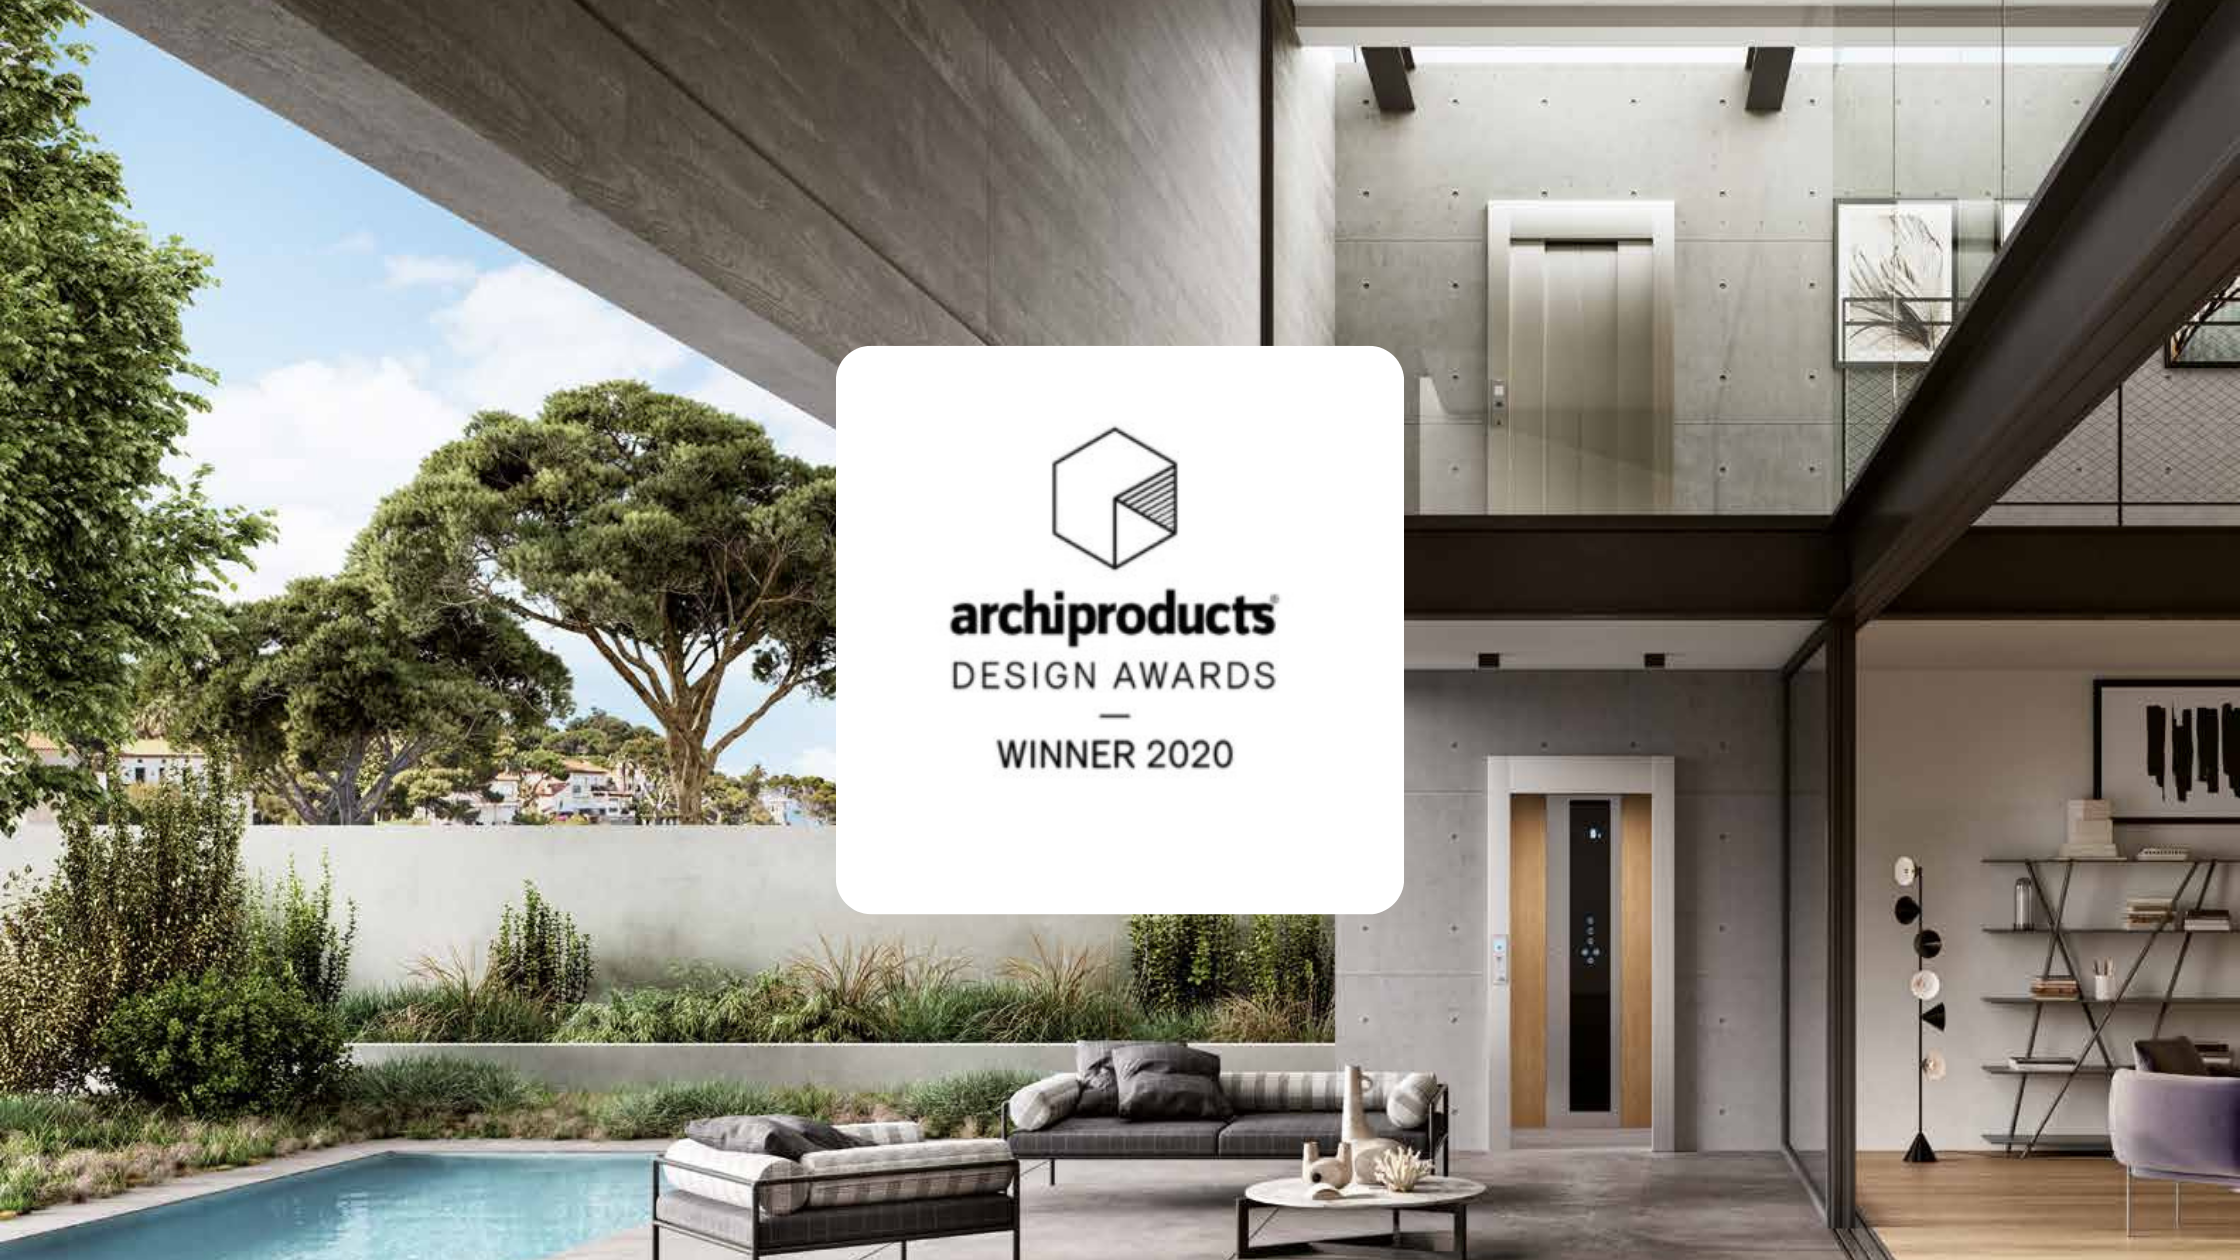 Archiproducts Design Awards Winner